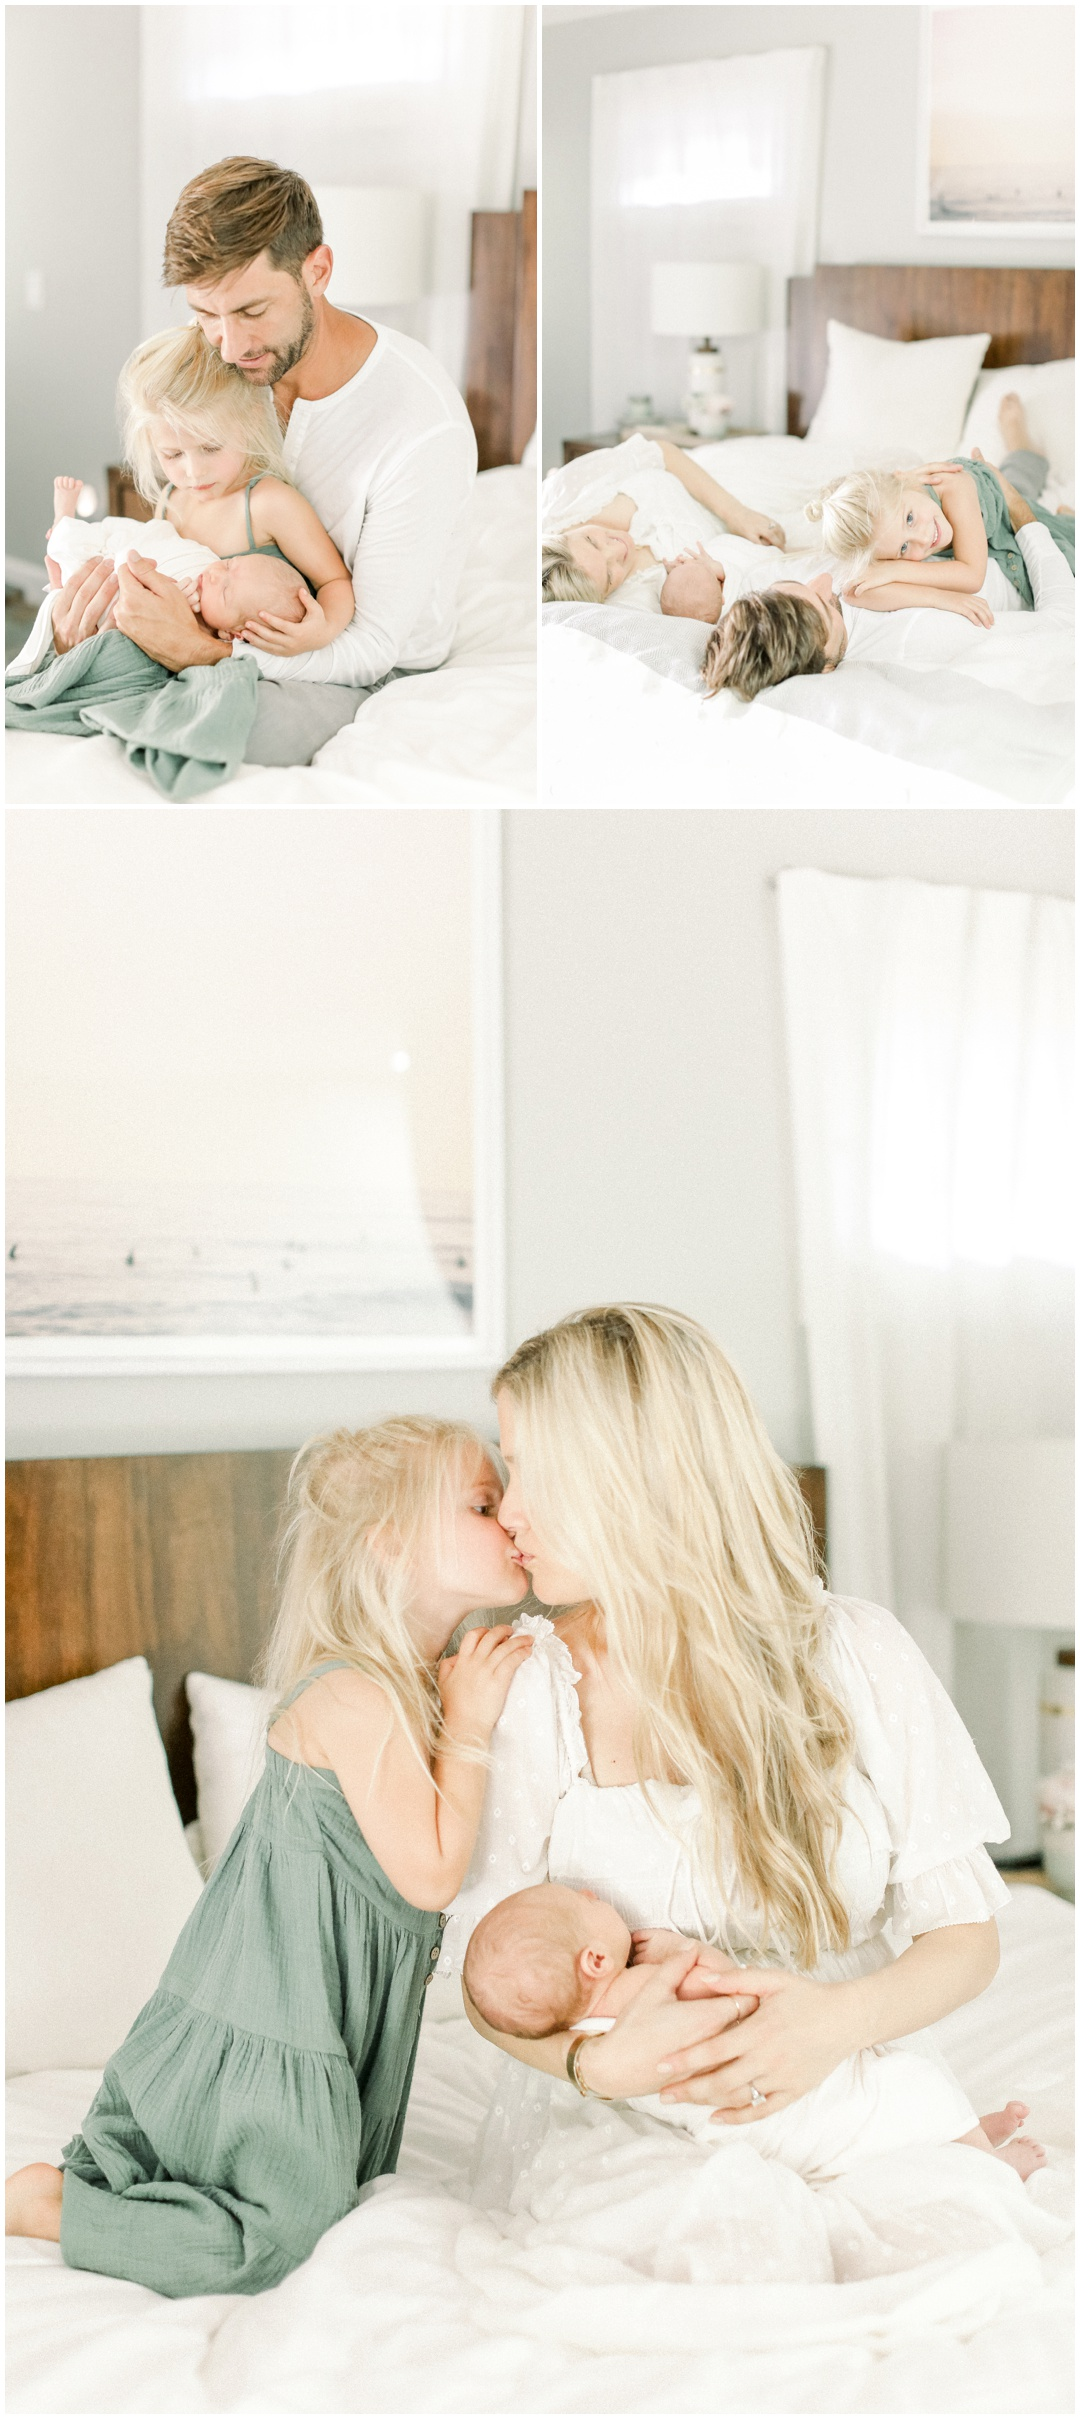 Newport_Beach_Newborn_Light_Airy_Natural_Photographer_Newport_Beach_Photographer_Orange_County_Family_Photographer_Cori_Kleckner_Photography_Newport_Beach_Photographer_Jacobs_Shelly__4062.jpg